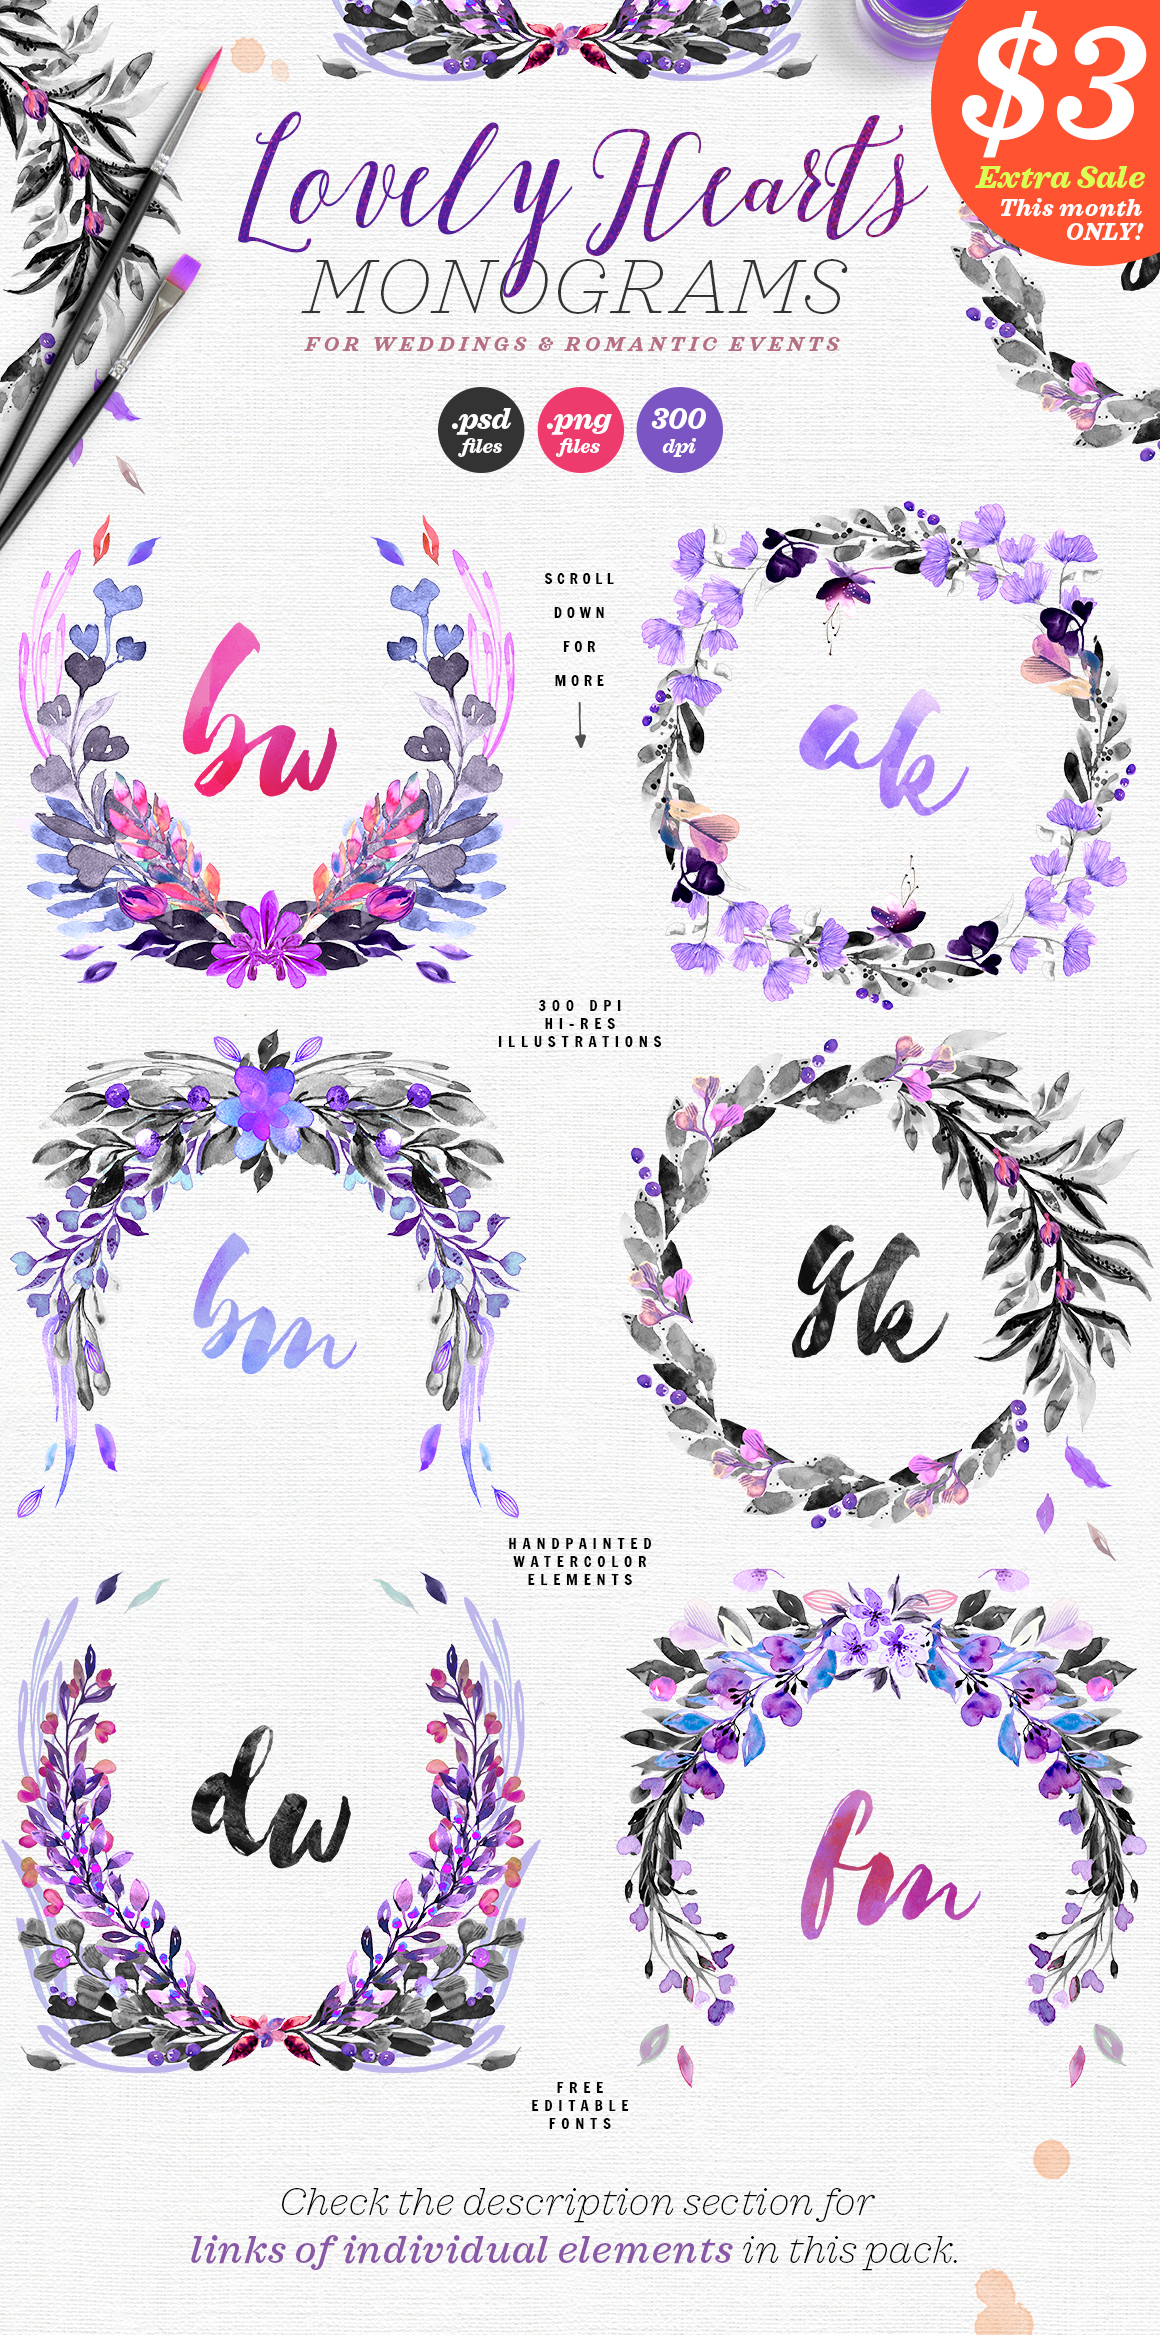 Lovely Hearts Monograms Graphic By lavie1blonde Image 2